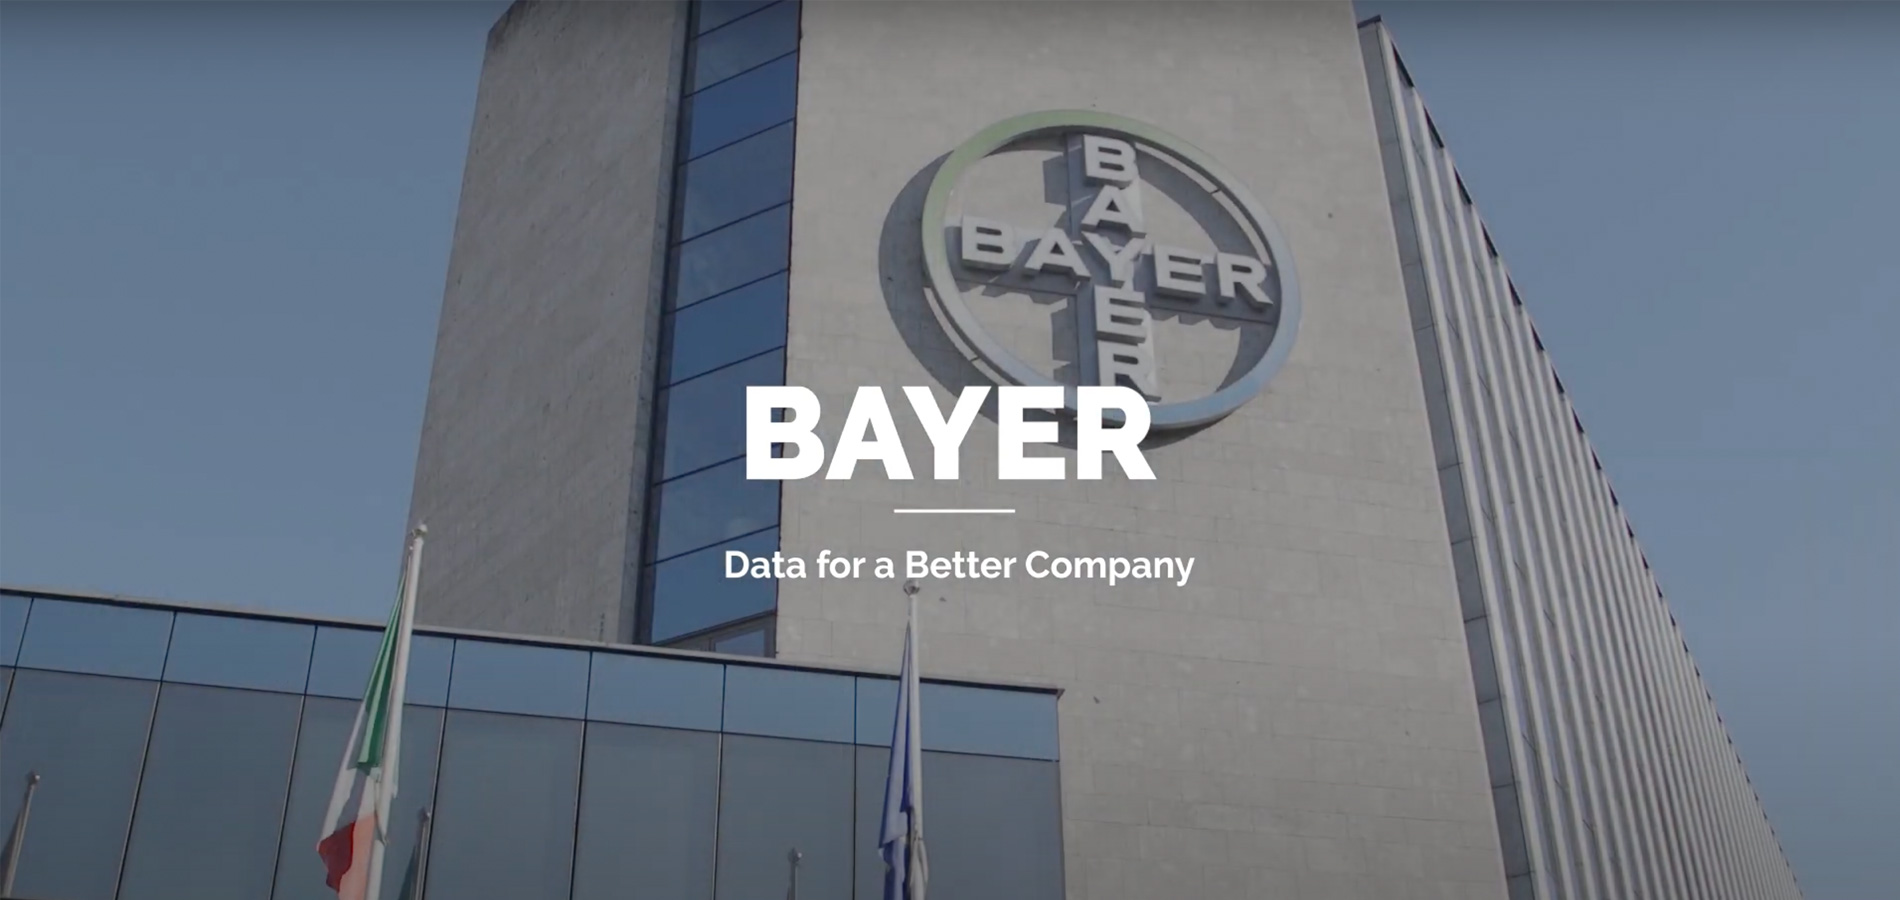 Bayer data for a better company